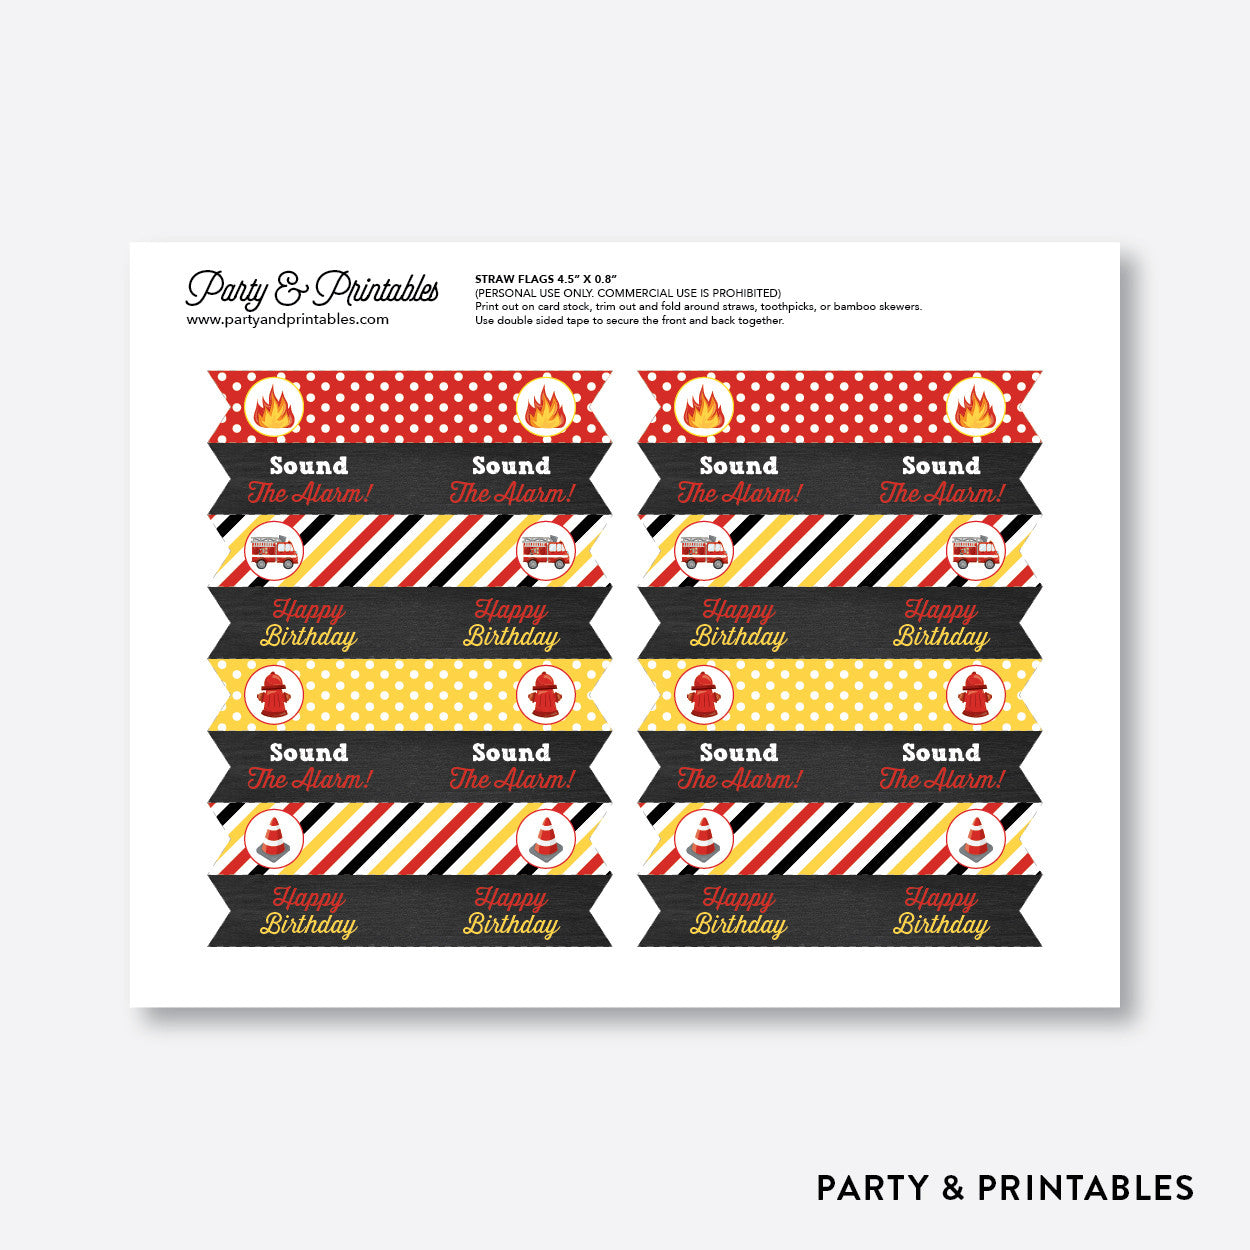 Fire Truck Chalkboard Straw Flags / Non-Personalized / Instant Download (CKB.521), party printables - Party and Printables